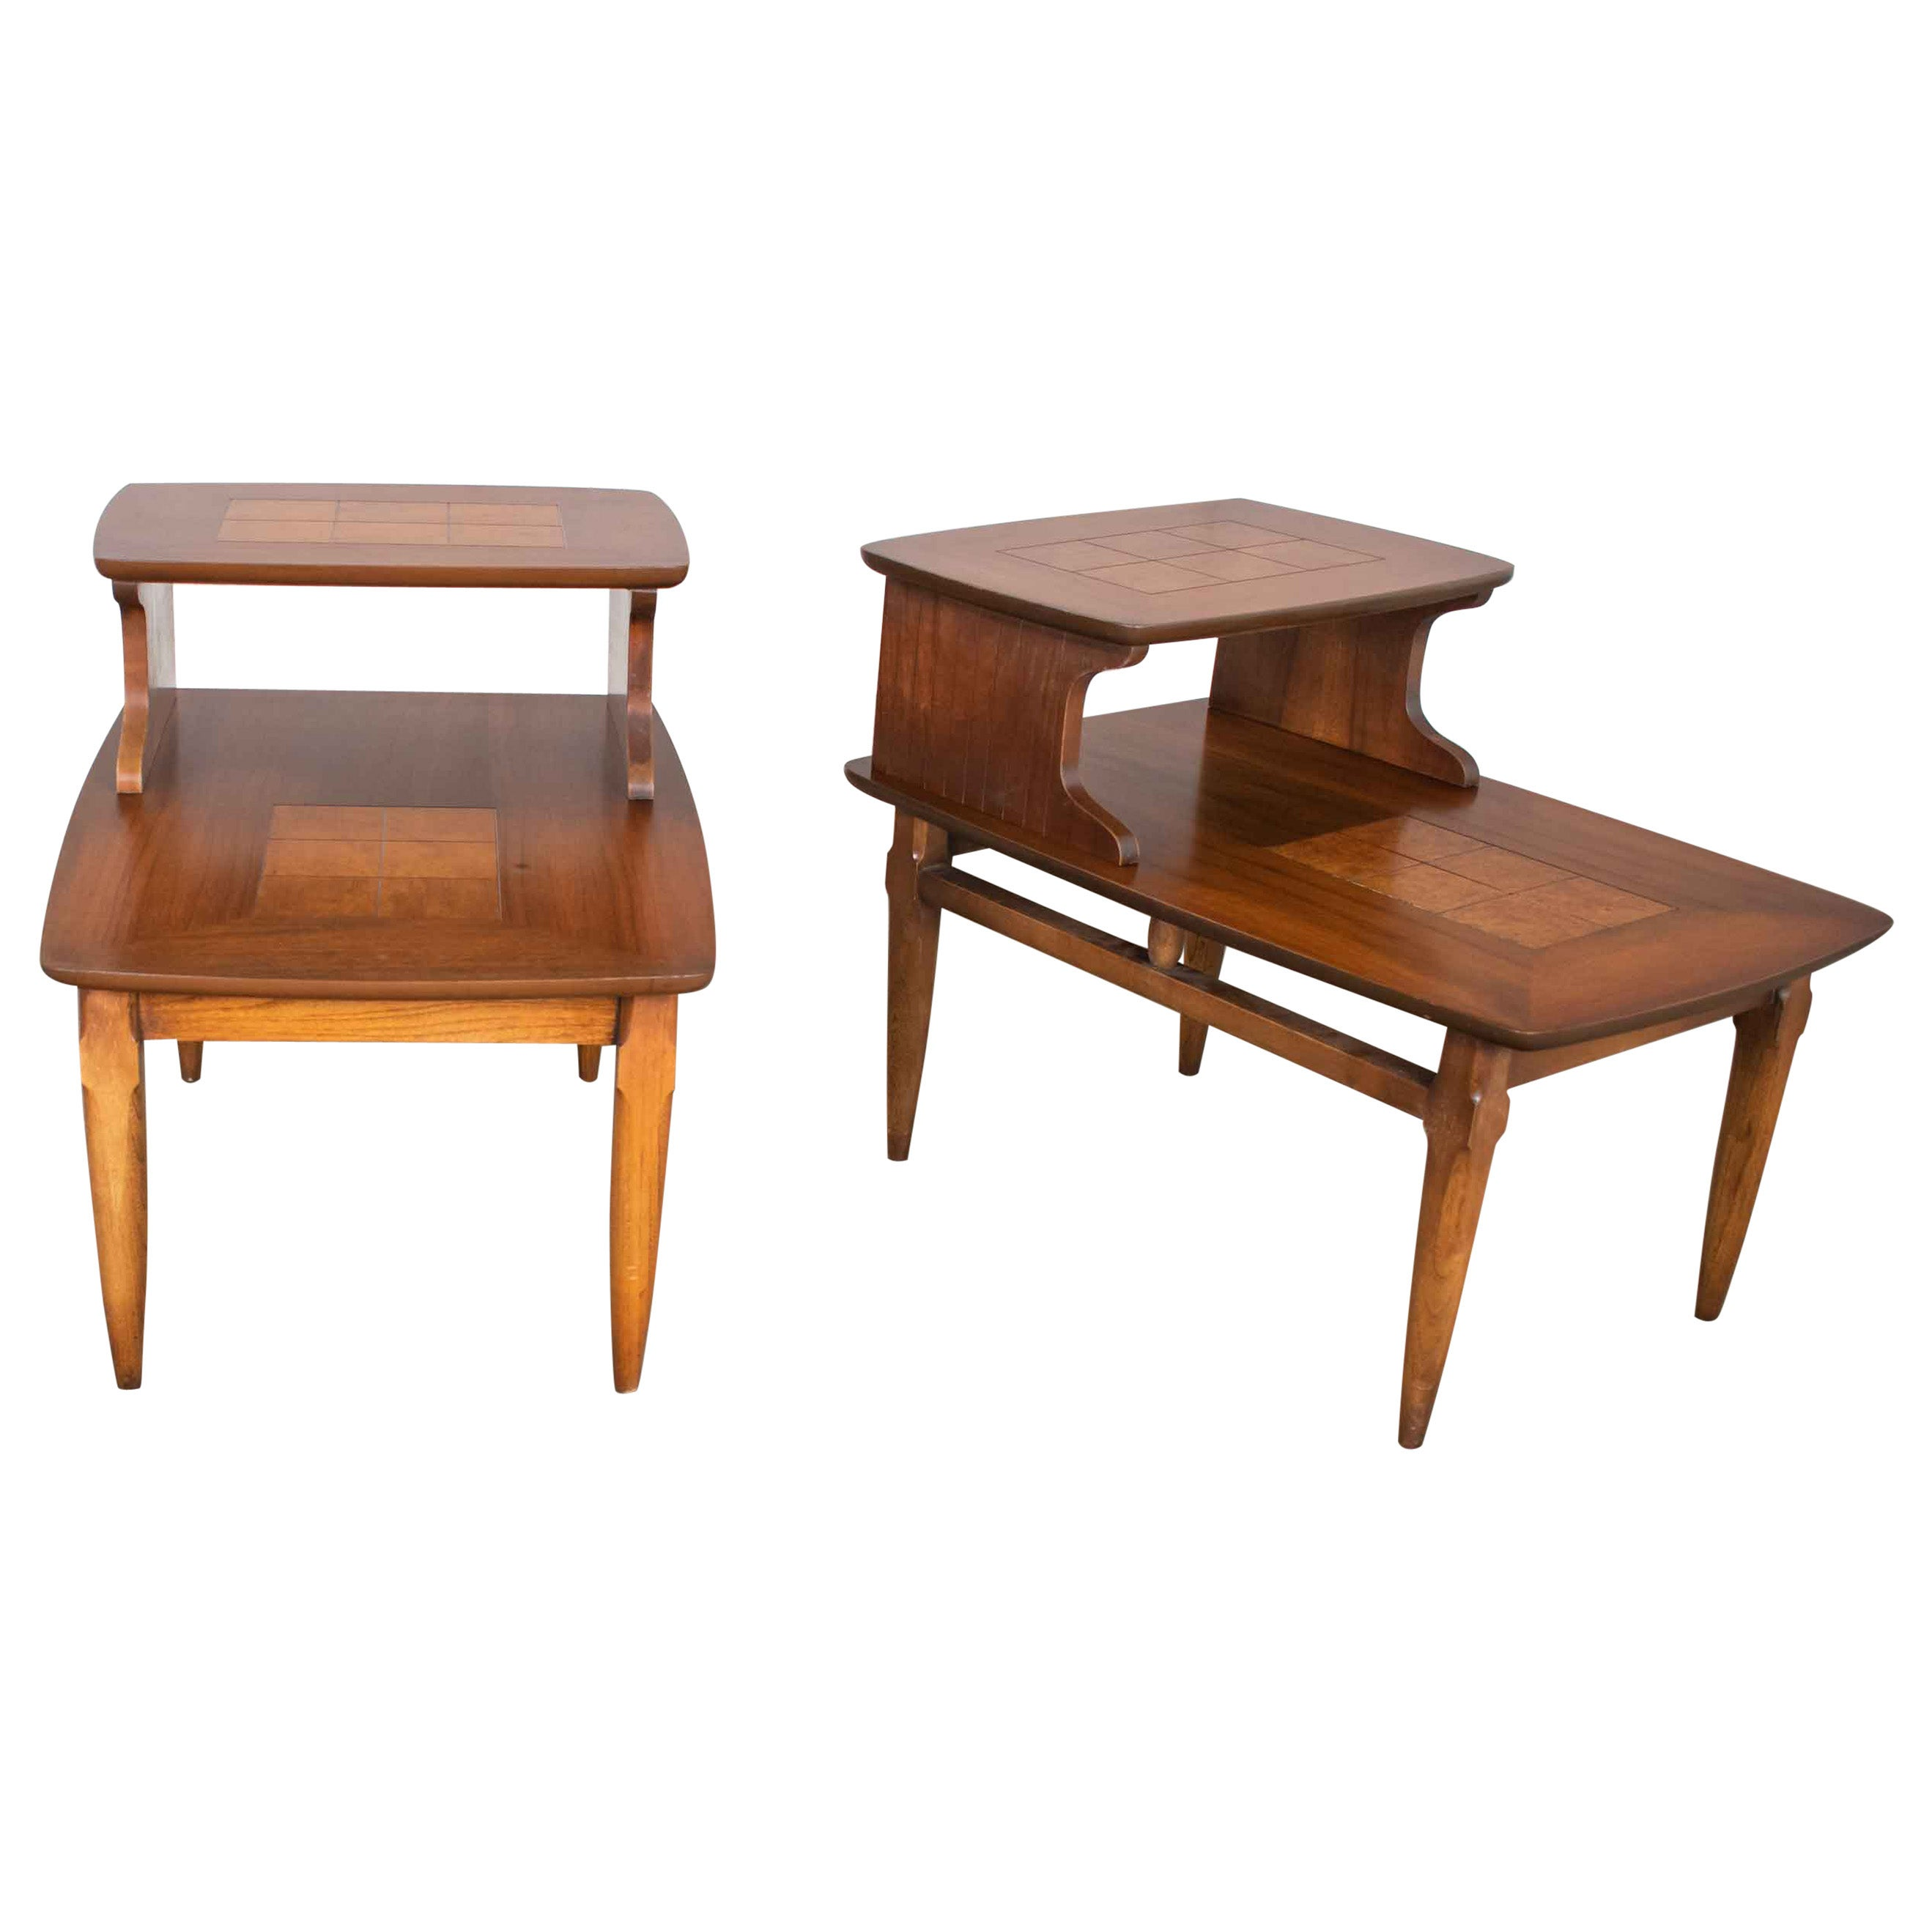 Mid-Century Modern Pair of Lane Step End Tables with Inlaid Walnut Burl Style